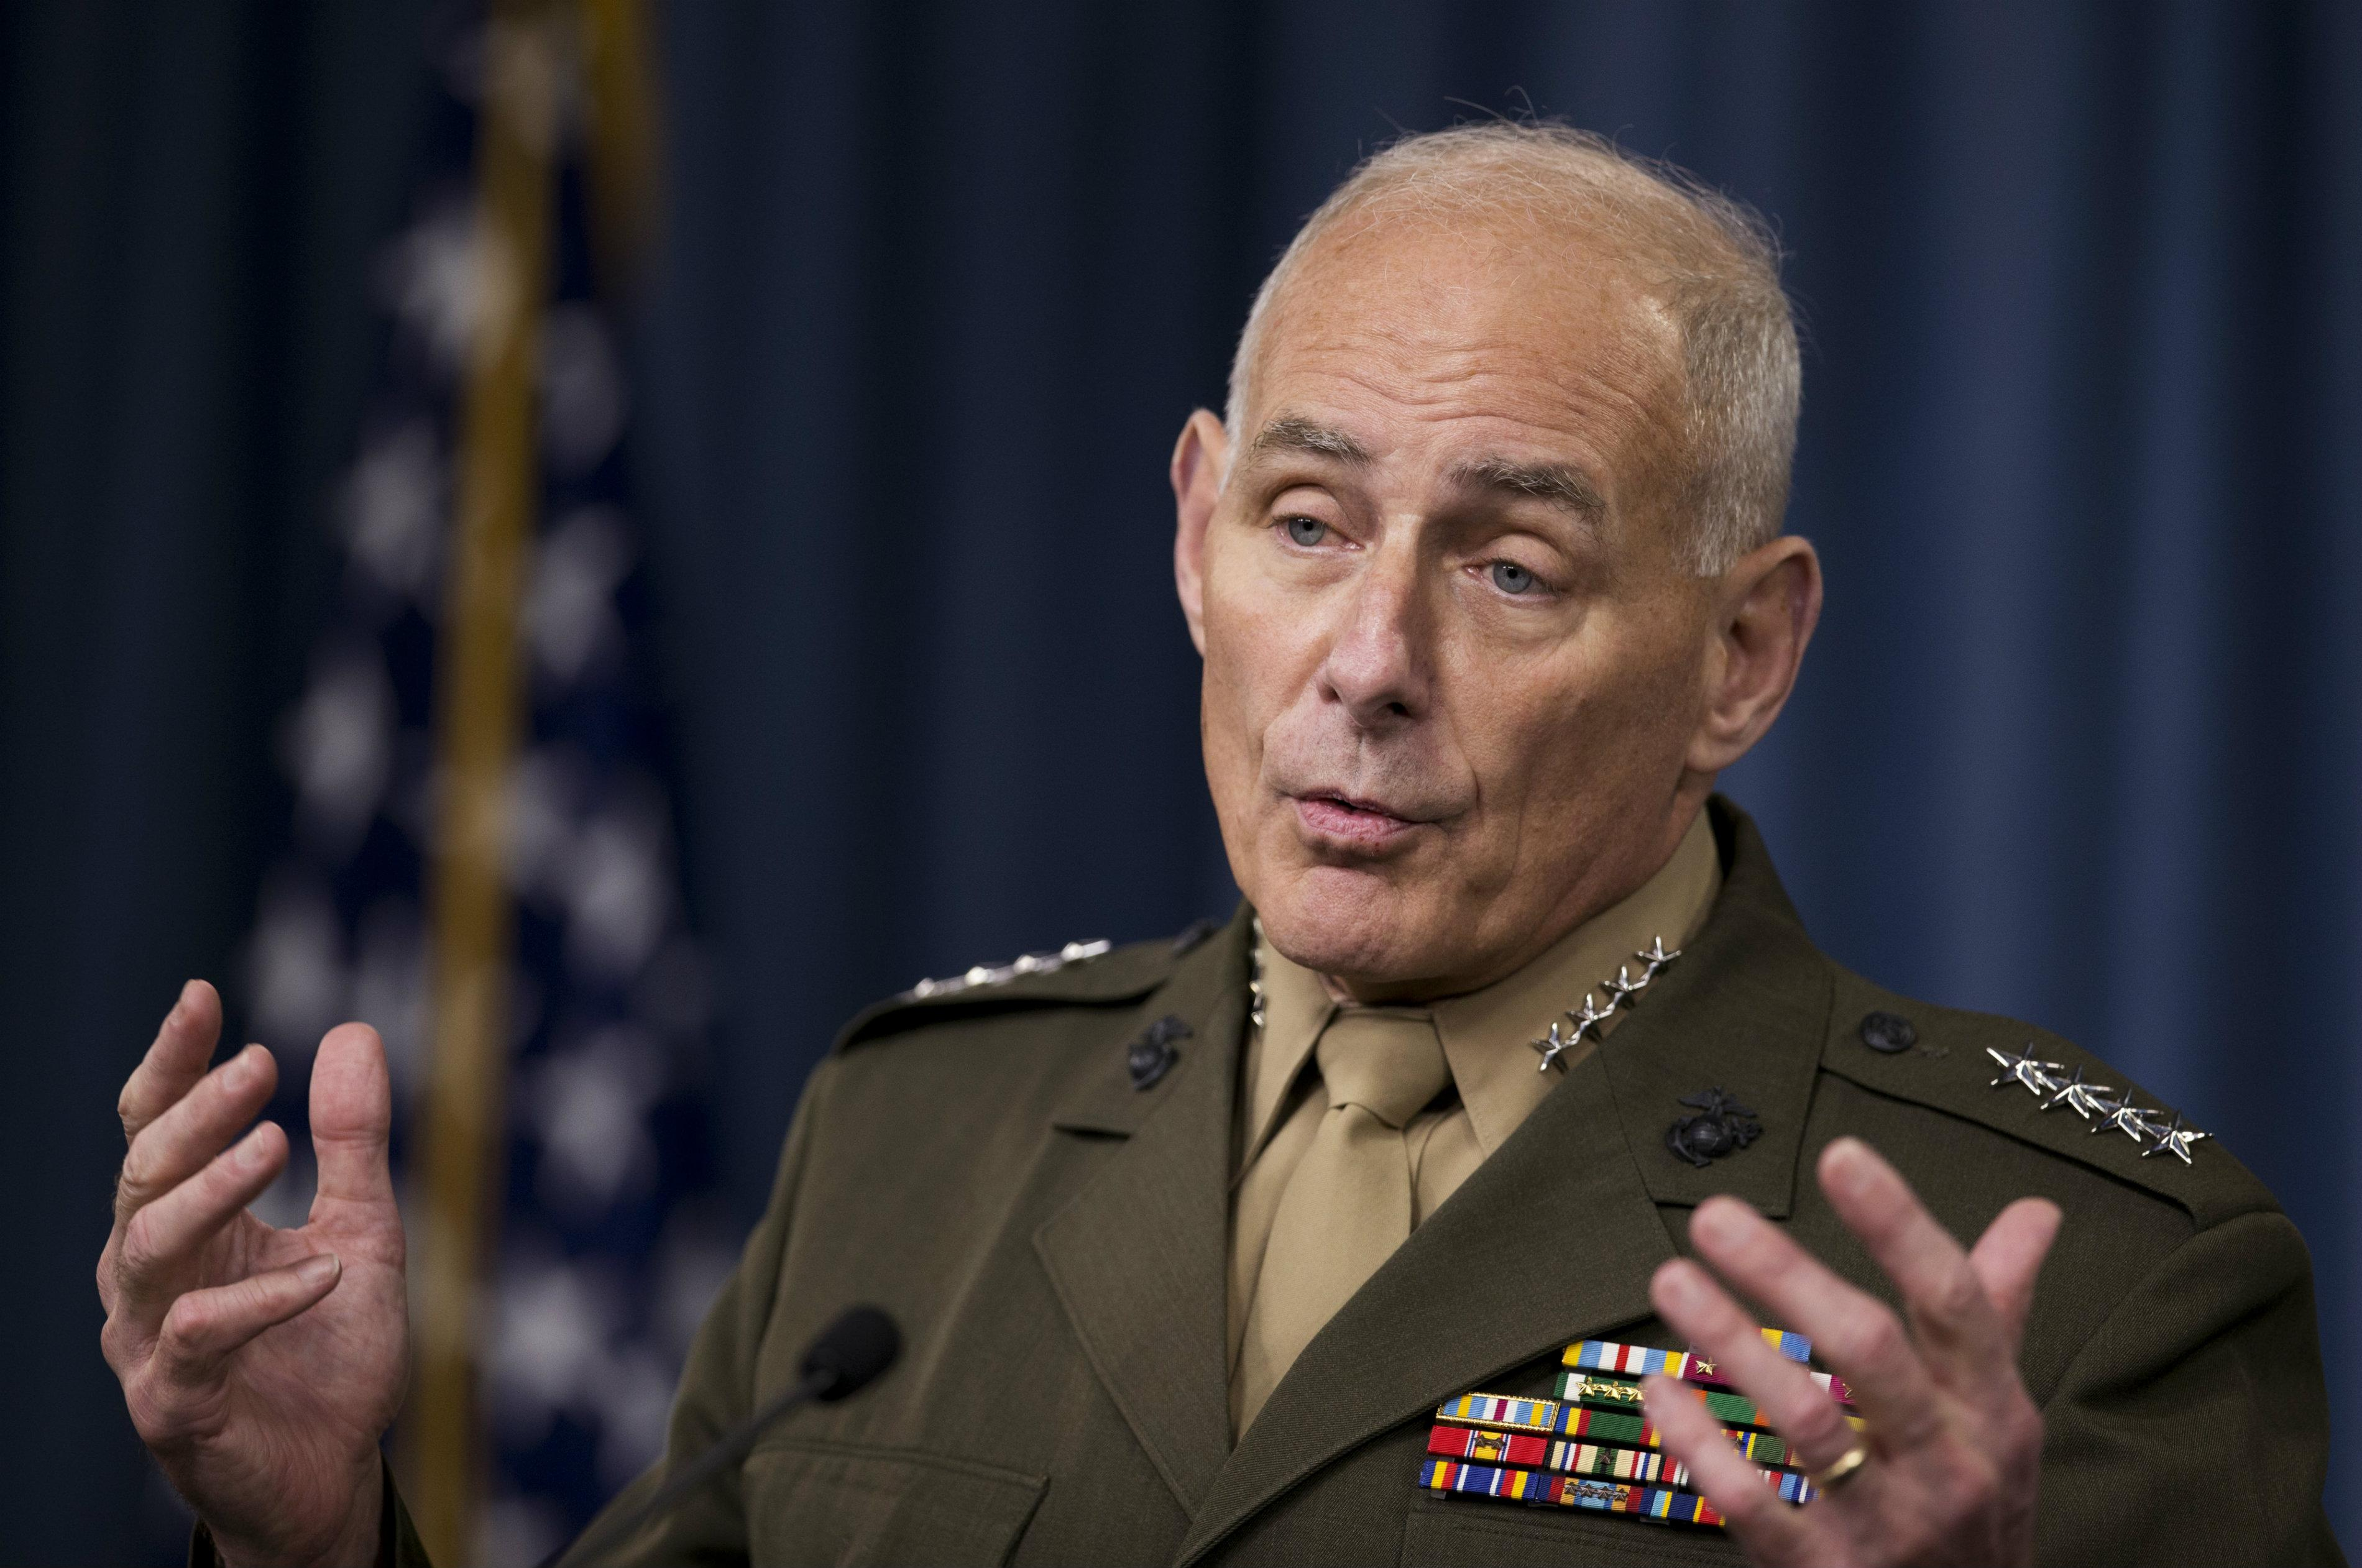 5 Things to Know About Gen. John Kelly